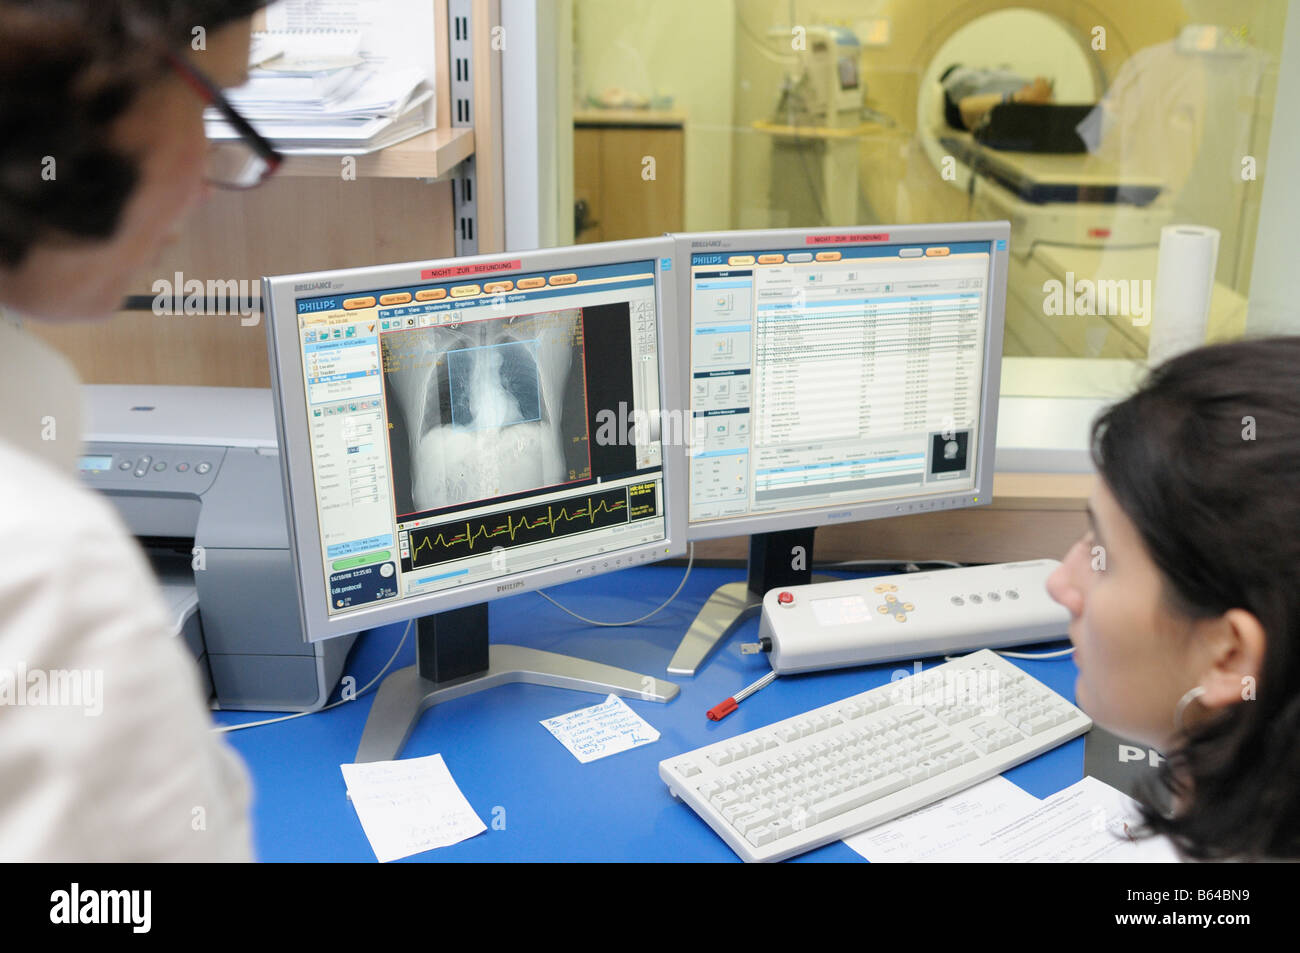 Radiologist at work - Stock Image